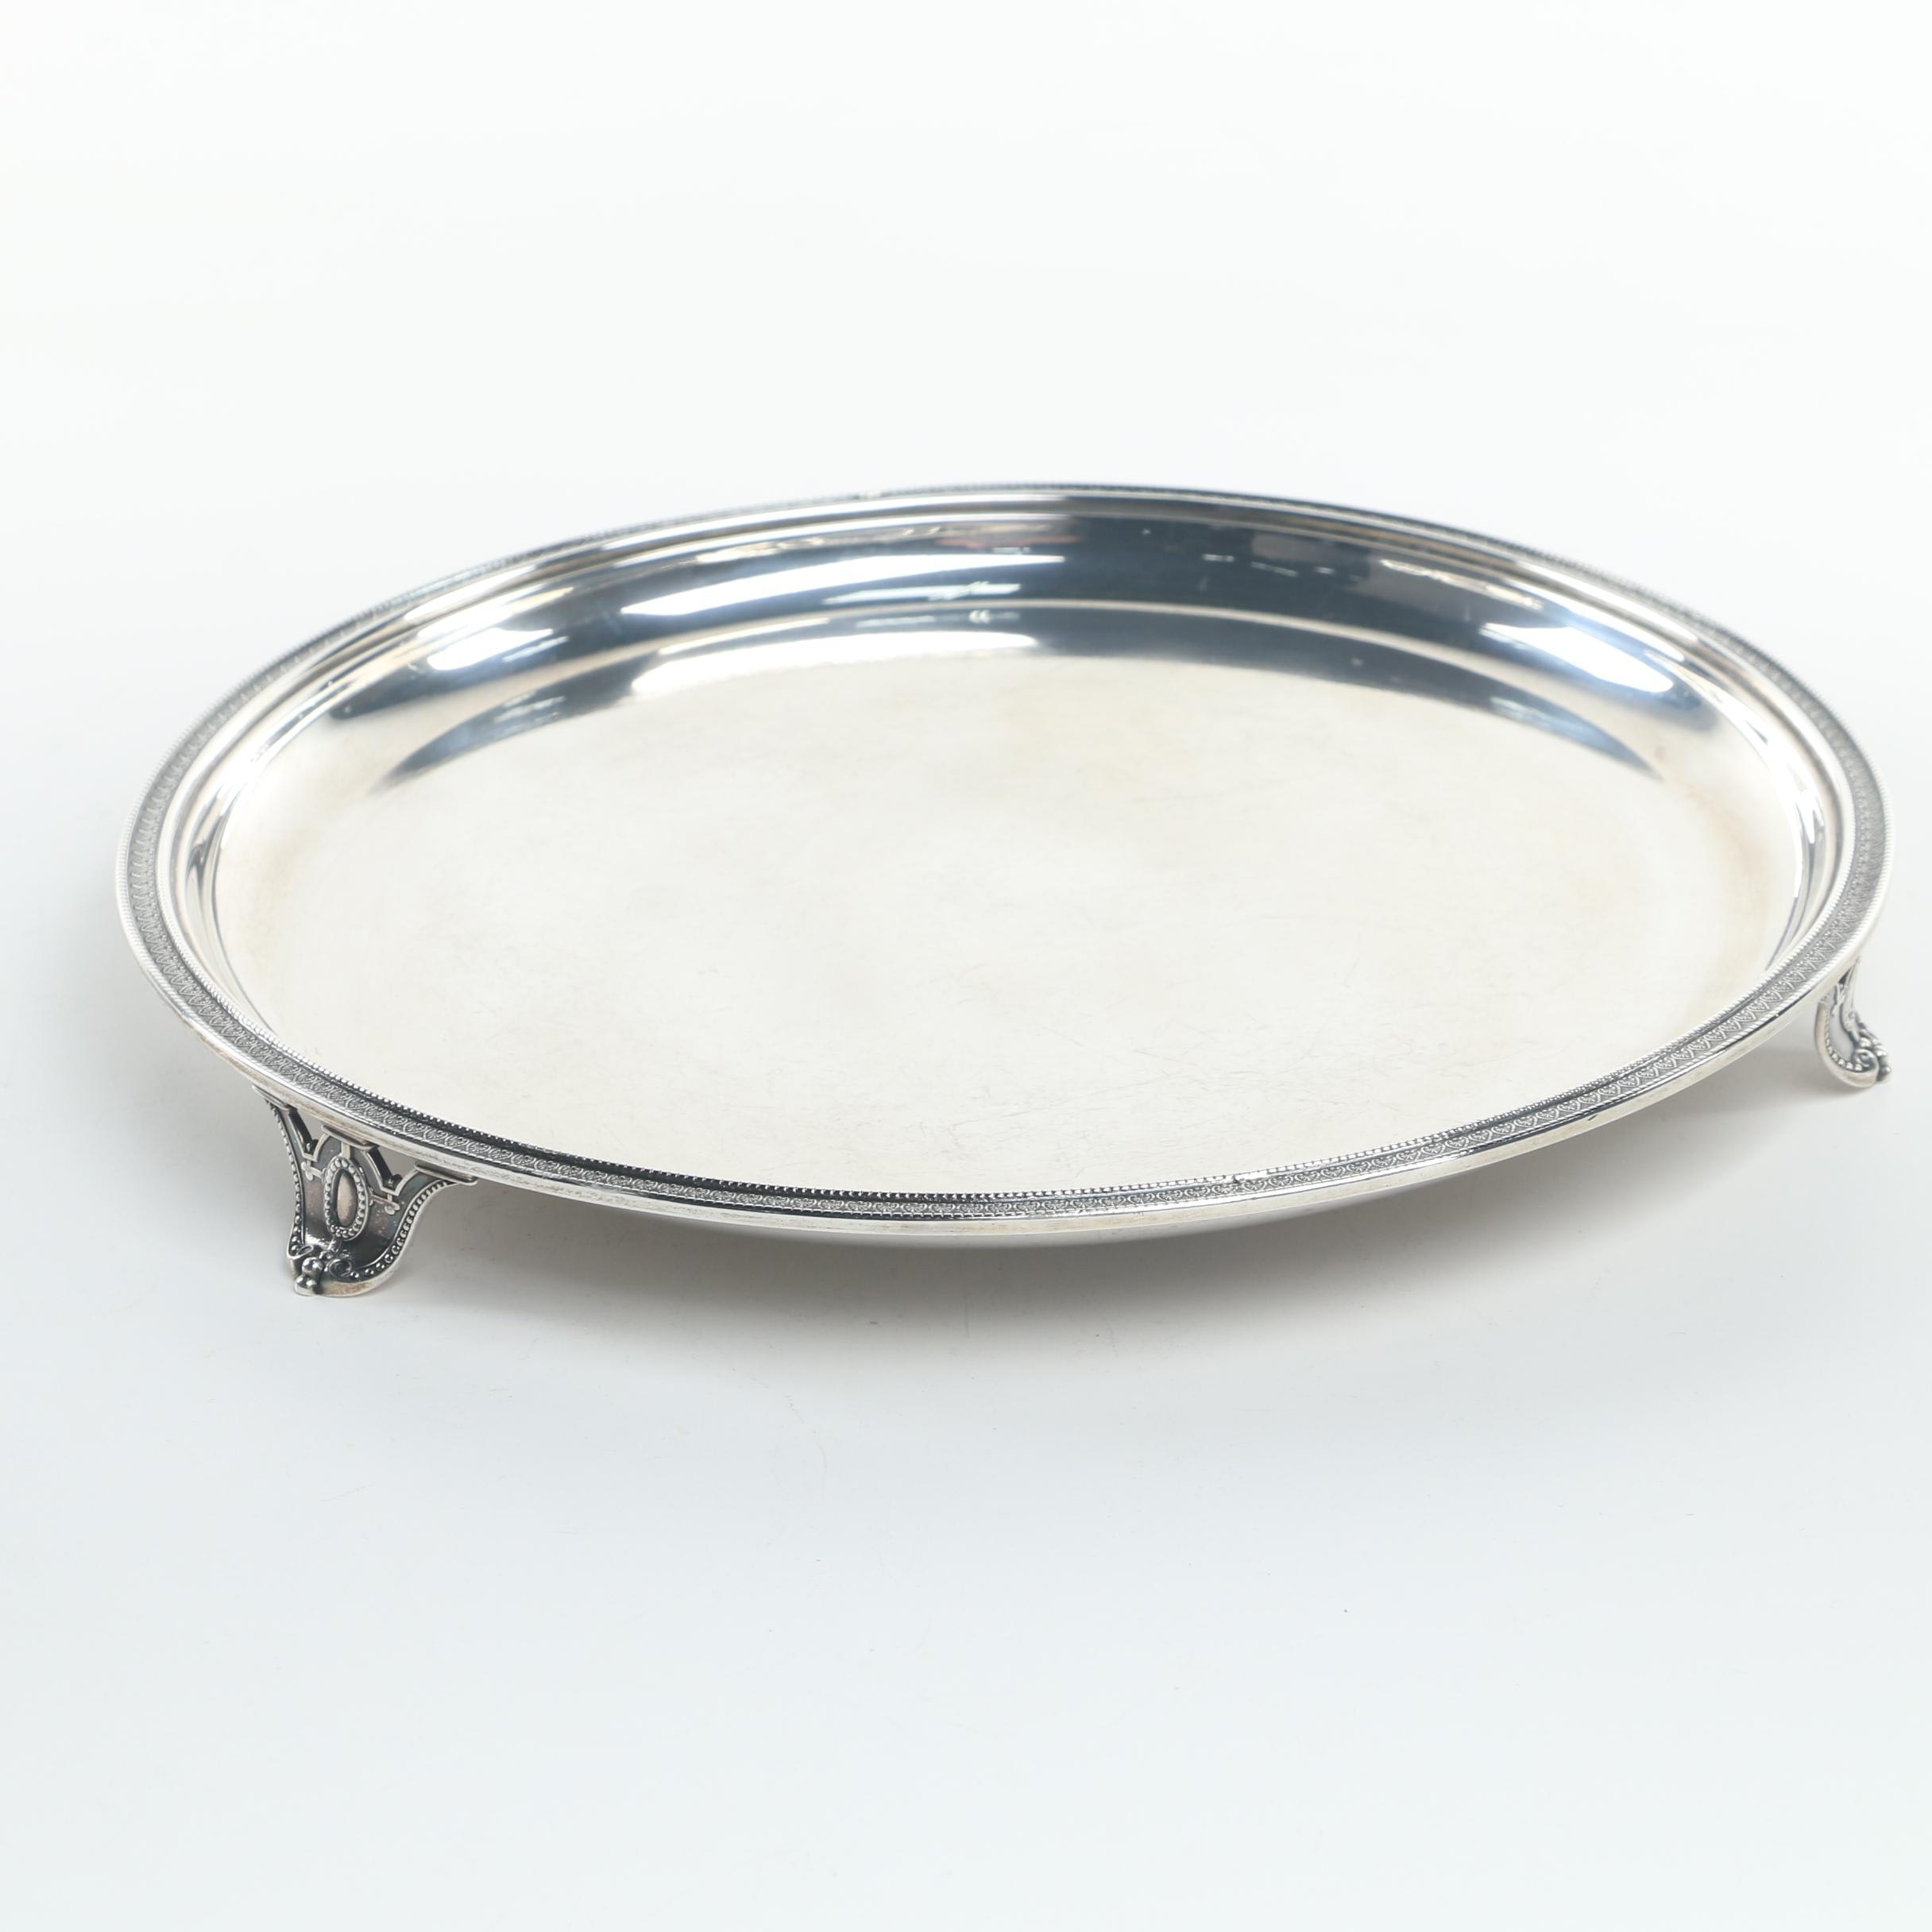 Mid-19th Century Tiffany & Co. Sterling Silver Footed Tray